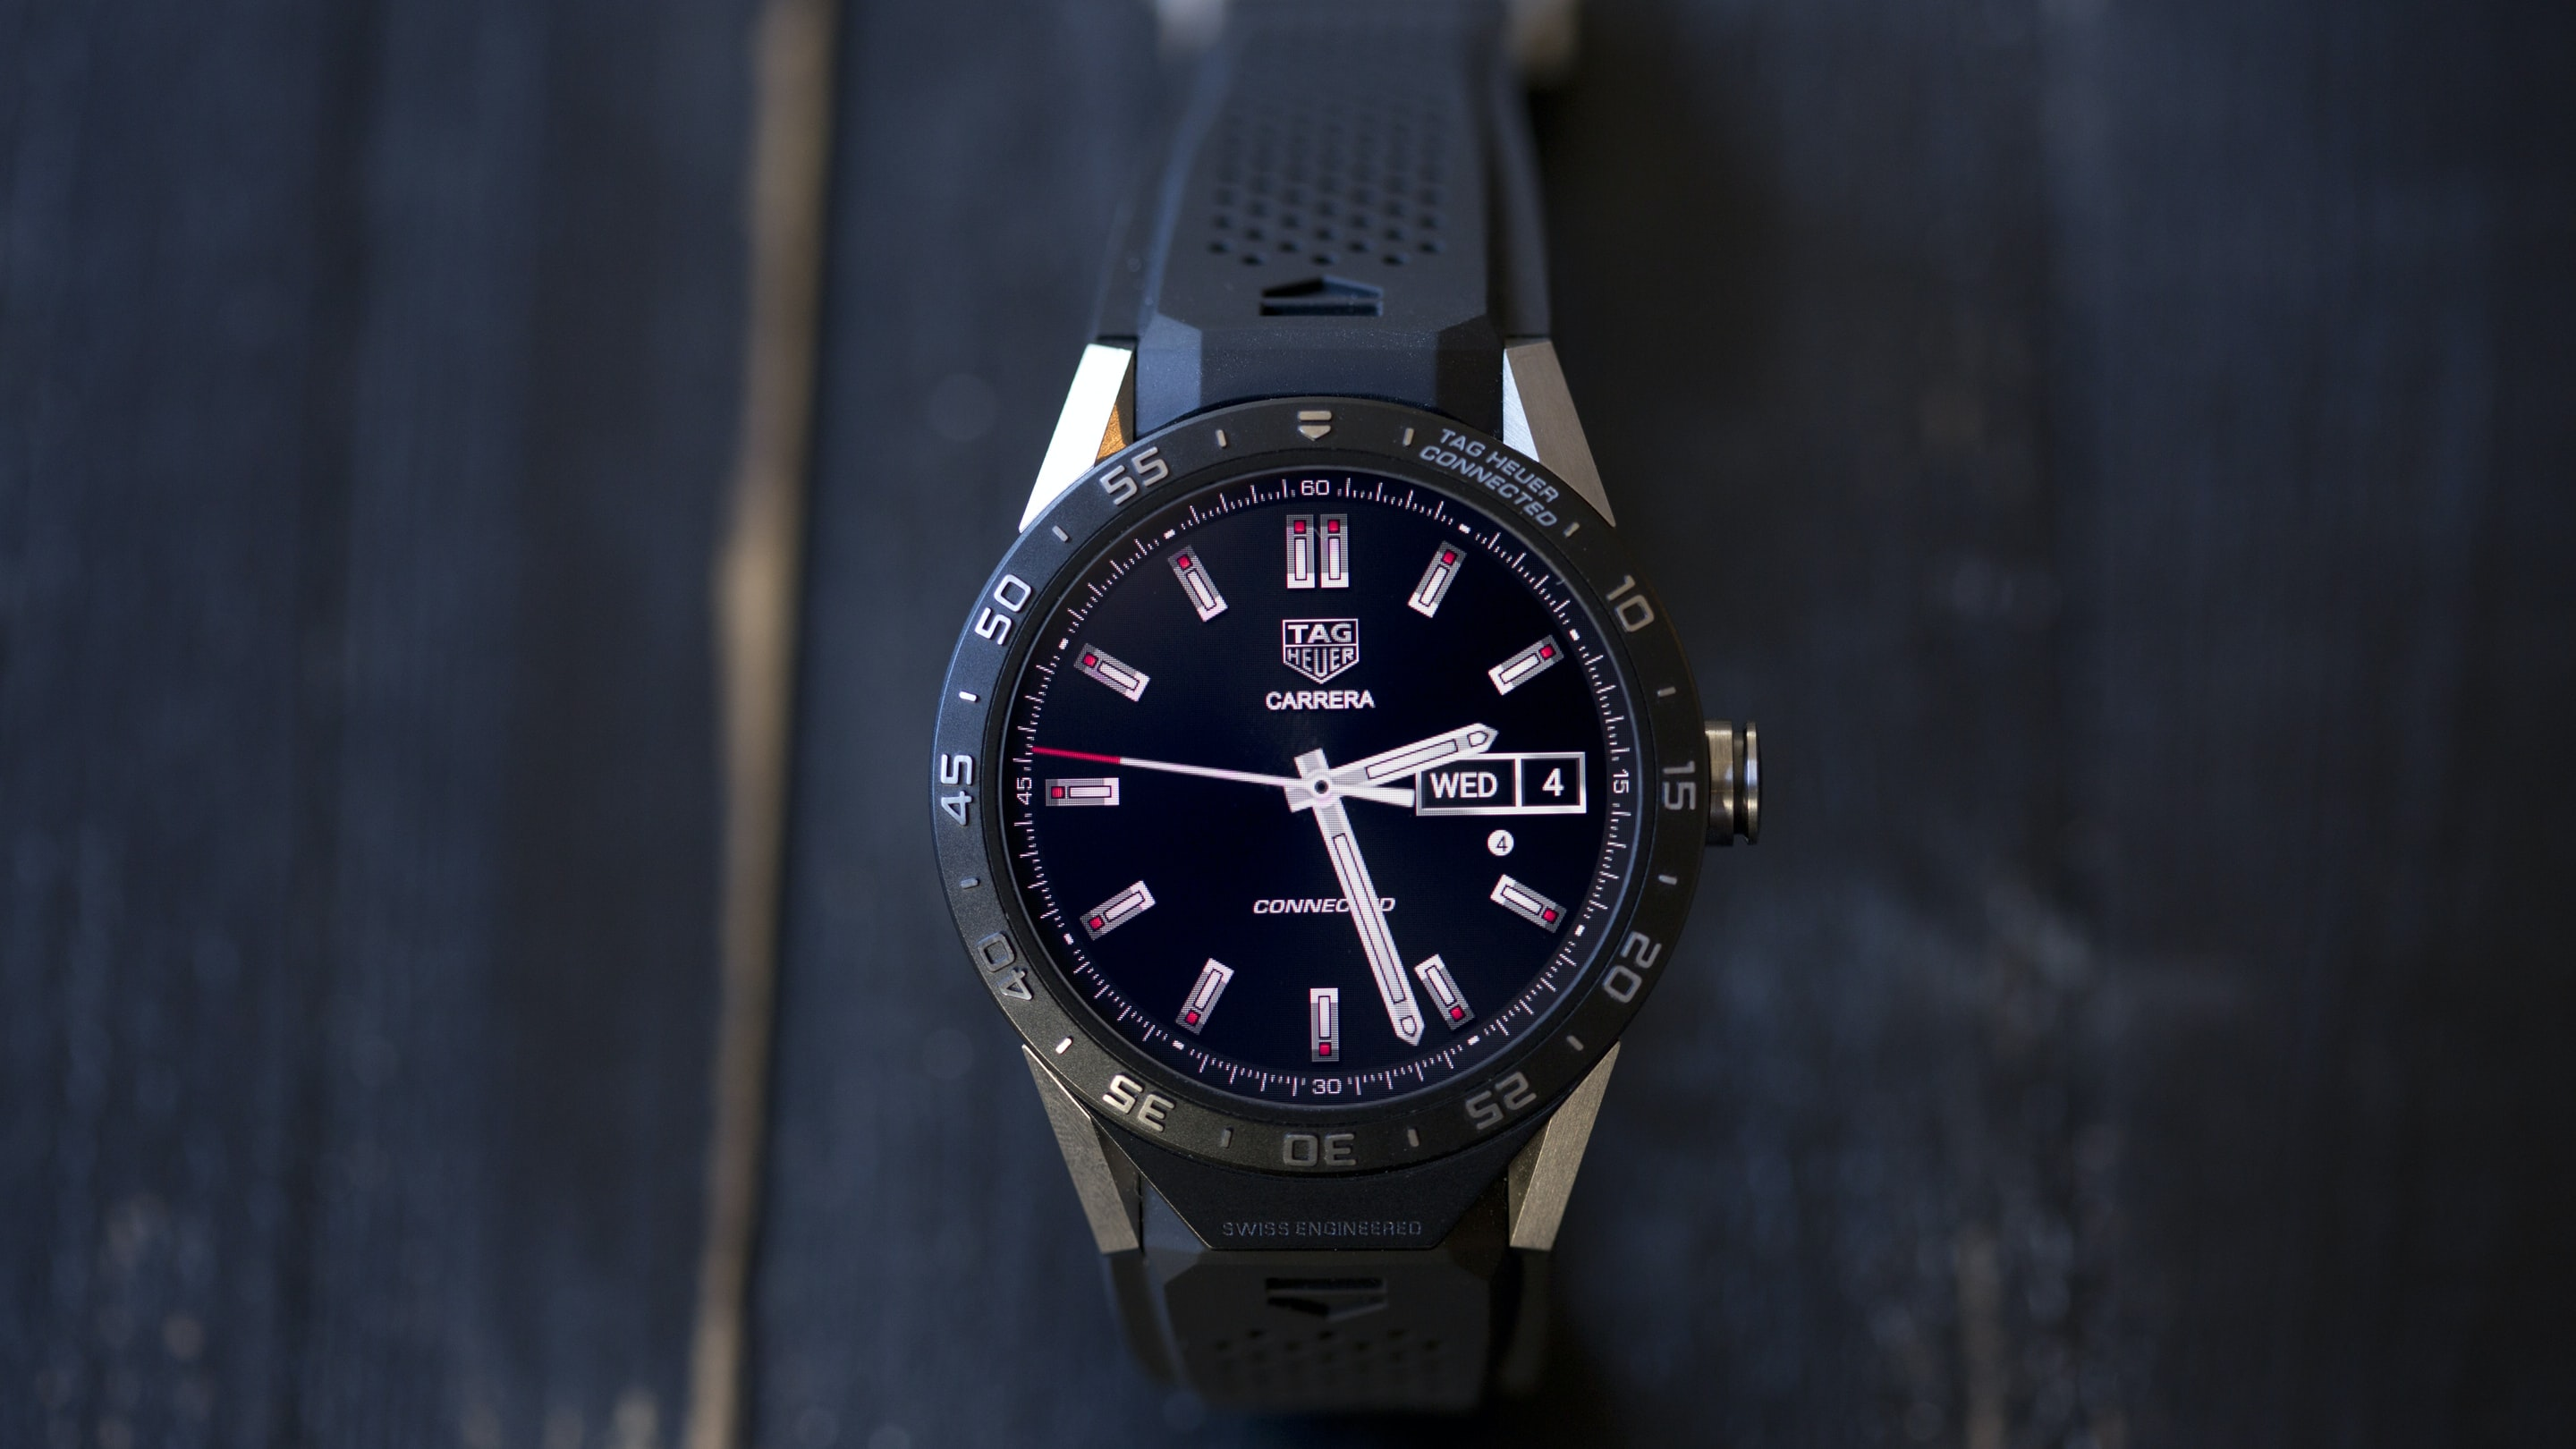 My Thoughts On The TAG Heuer Connected Smartwatch, By Kevin Rose